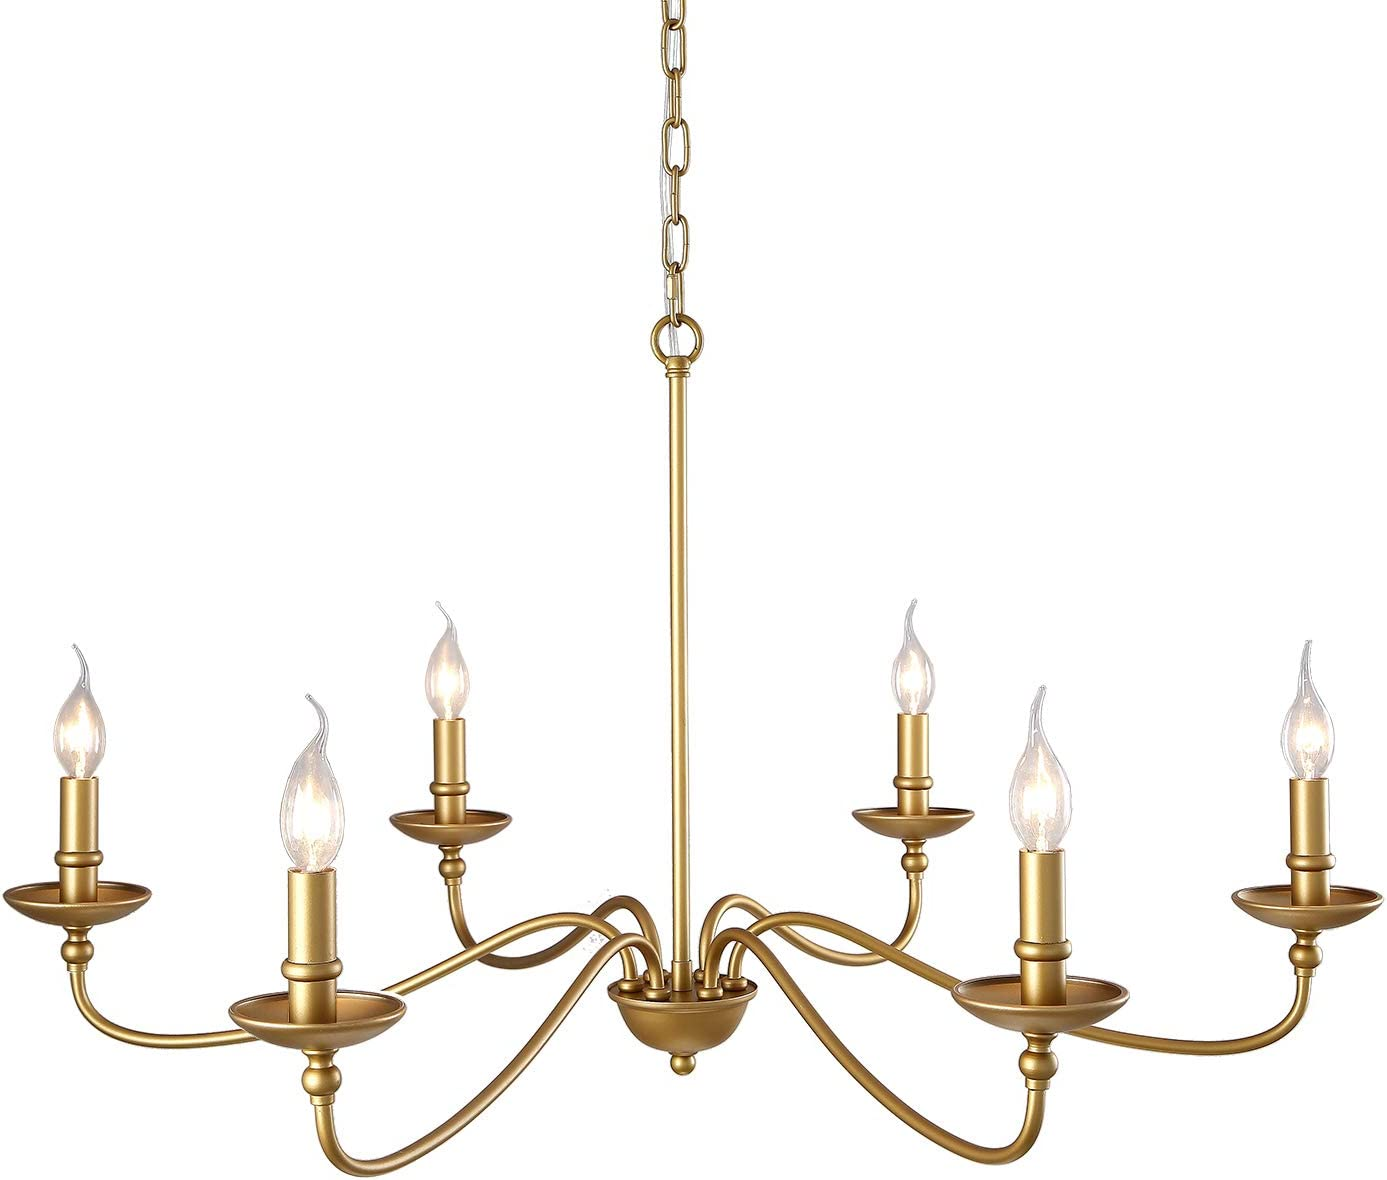 SEOL-LIGHT 36 Dia Classic Candelabra Style Large Branch Chandeliers Ceiling Hanging Pendant Light Fixture 6 Light 240W Antique Brass Painted Finish